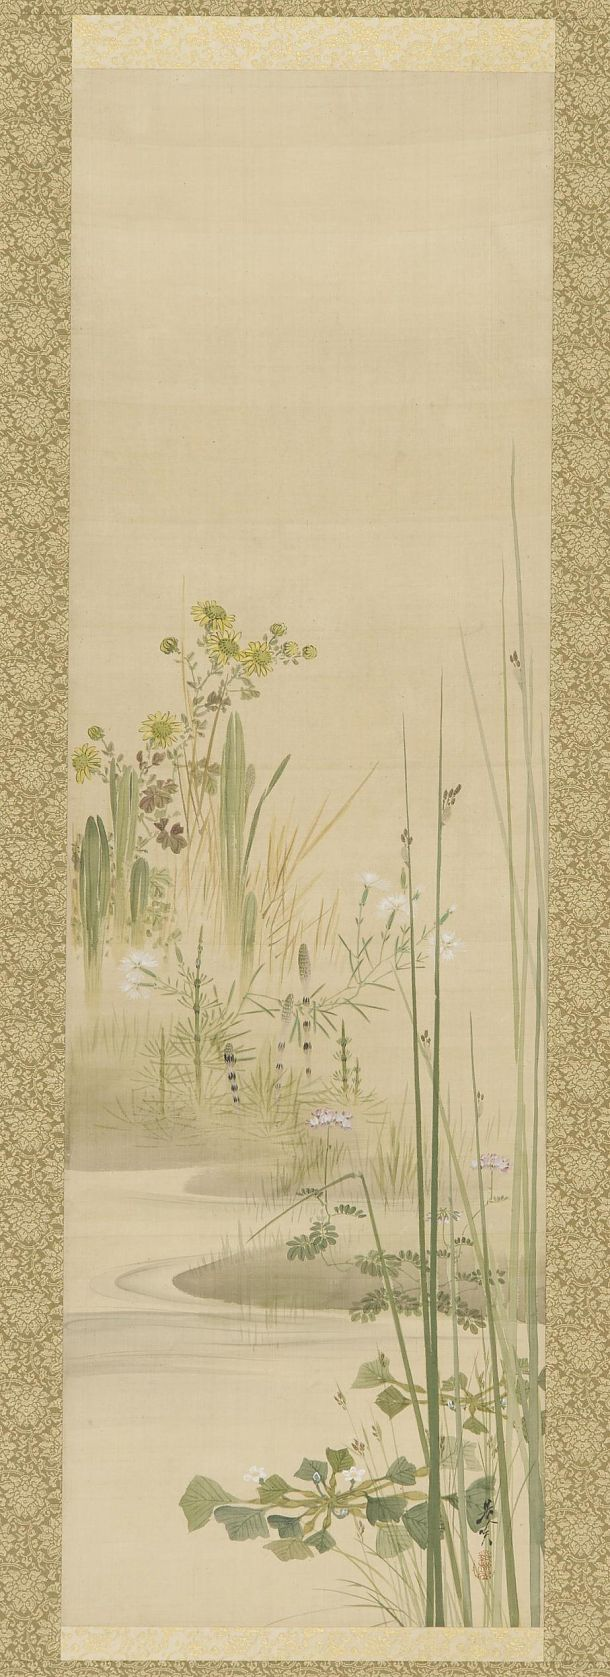 Color in japanese art -  Grasses And Flowering Plants Silk Painting By Shibata Zeshin Image And Text Courtesy Freer Sackler Japanese Art Copyright With Museum